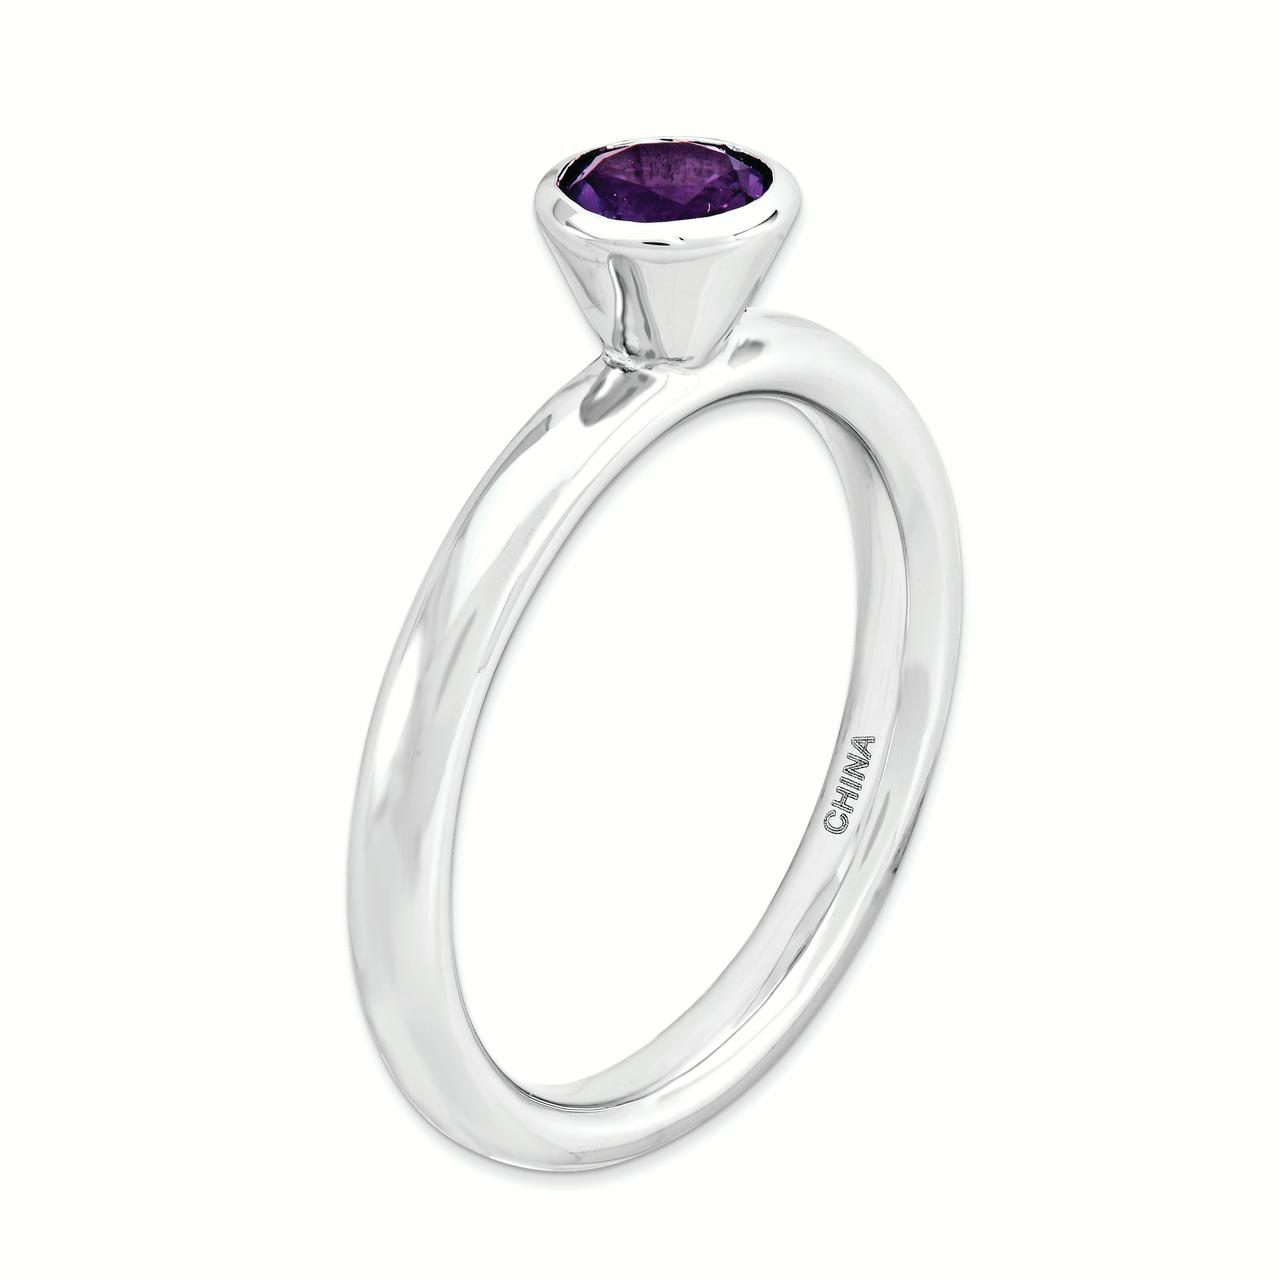 925 Sterling Silver High 5mm Round Purple Amethyst Band Ring Size 6.00 Stone Stackable Gemstone Birthstone February Fine Jewelry Gifts For Women For Her - image 2 of 4